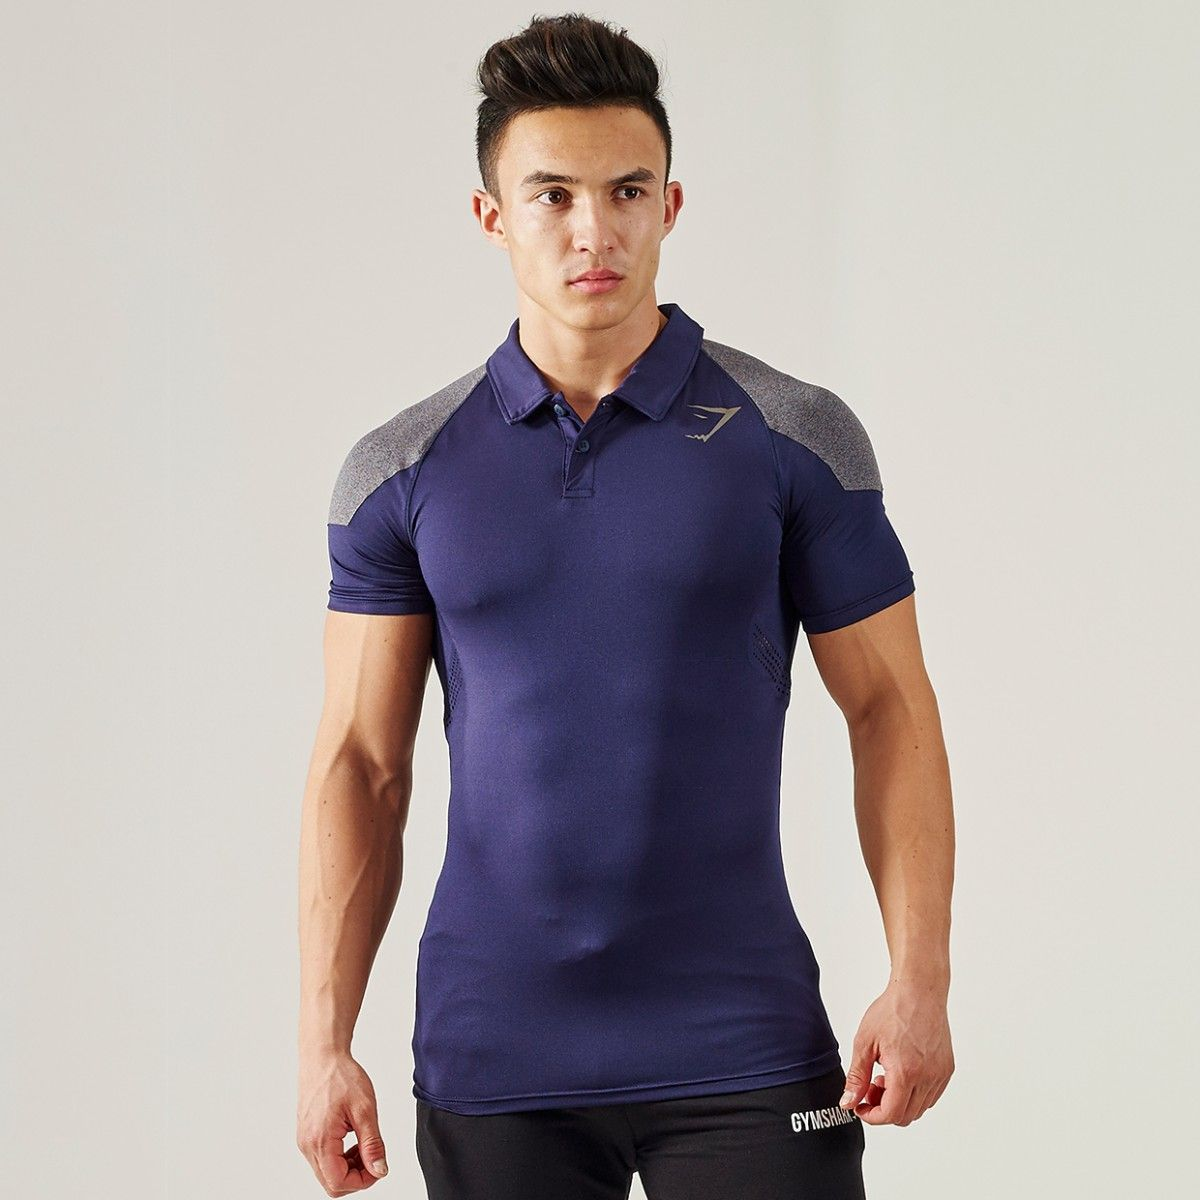 6e5977cebfb06 Gymshark DRY Apex Polo - Sapphire Blue - All Products - Shop By Category -  Mens